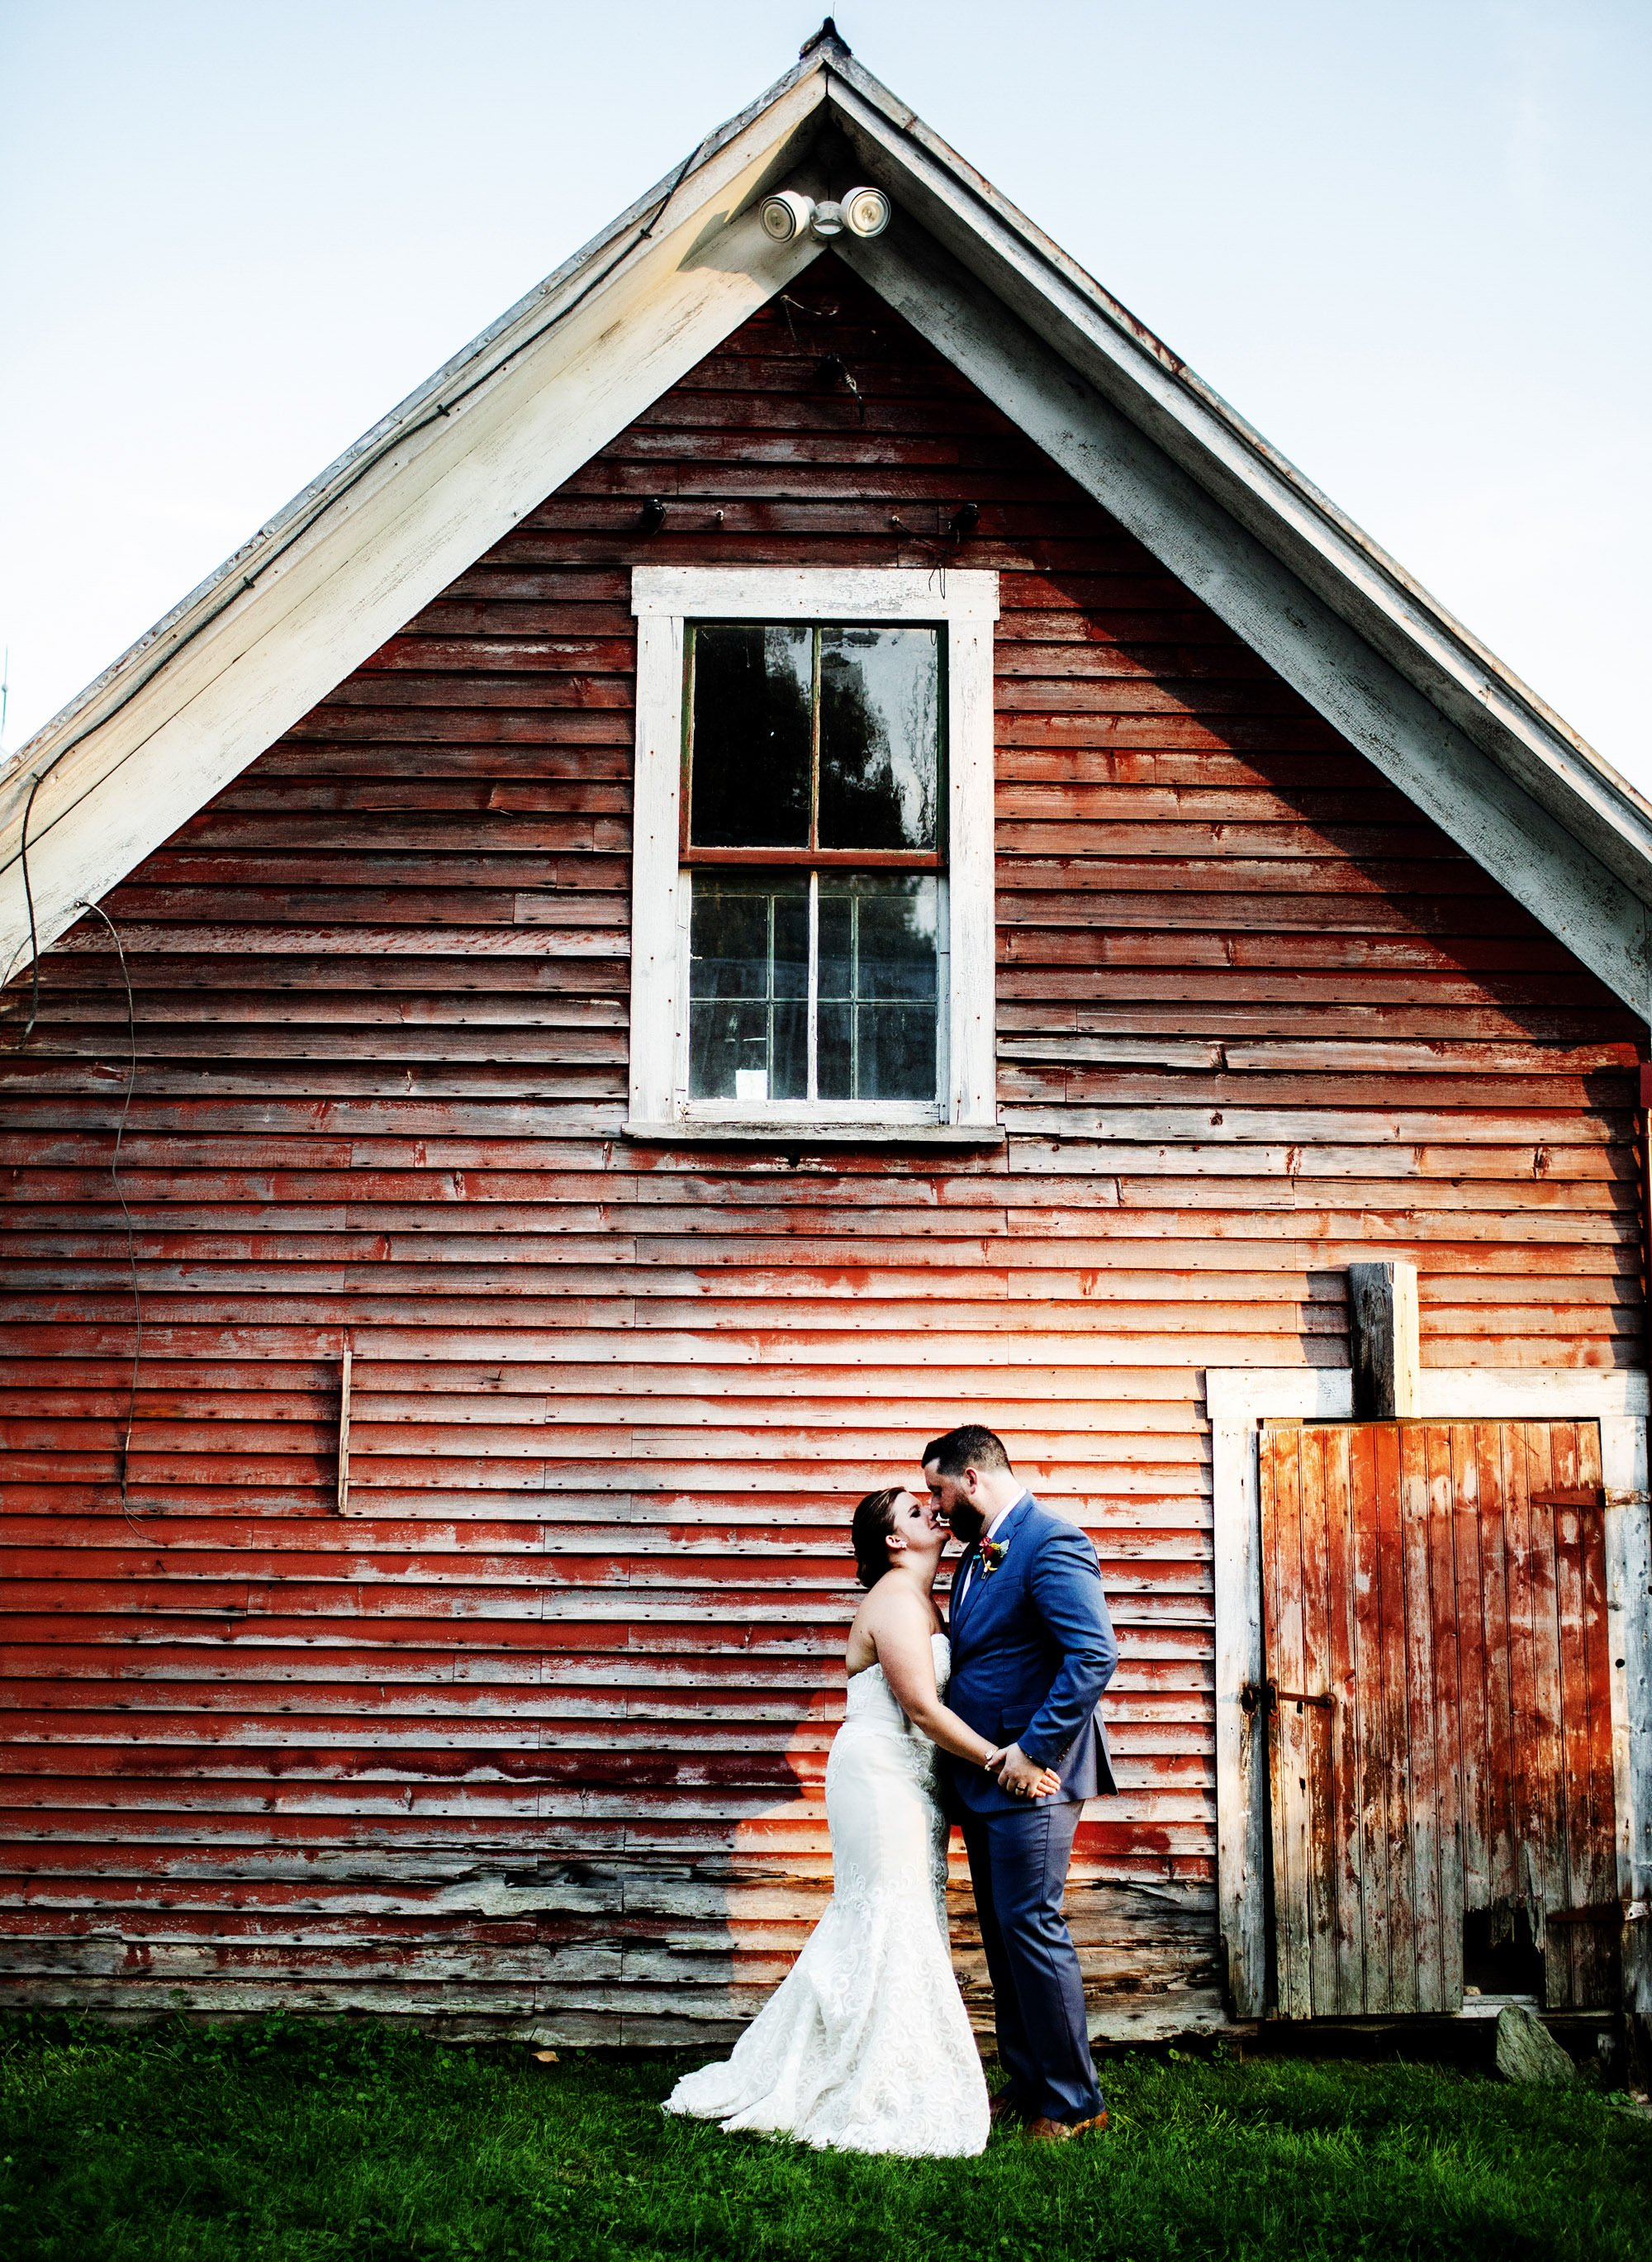 The bride and groom pose in front of a red barn on their Bishop Farm wedding day.